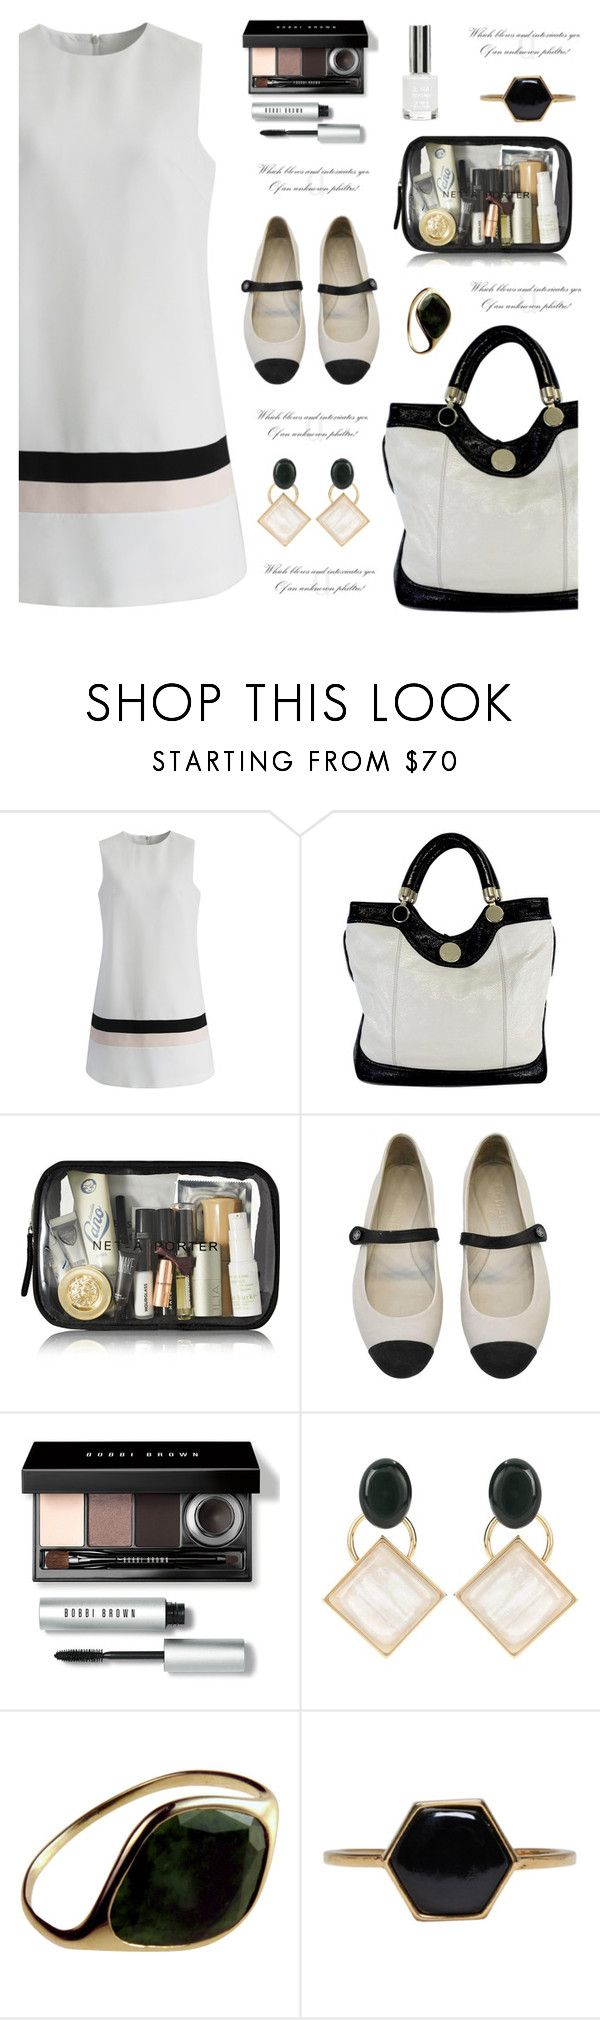 """""""needing a break"""" by countrycousin ❤ liked on Polyvore featuring Chicwish, Jill Stuart, Chanel, Bobbi Brown Cosmetics, Marni, Isabel Marant and Topshop"""